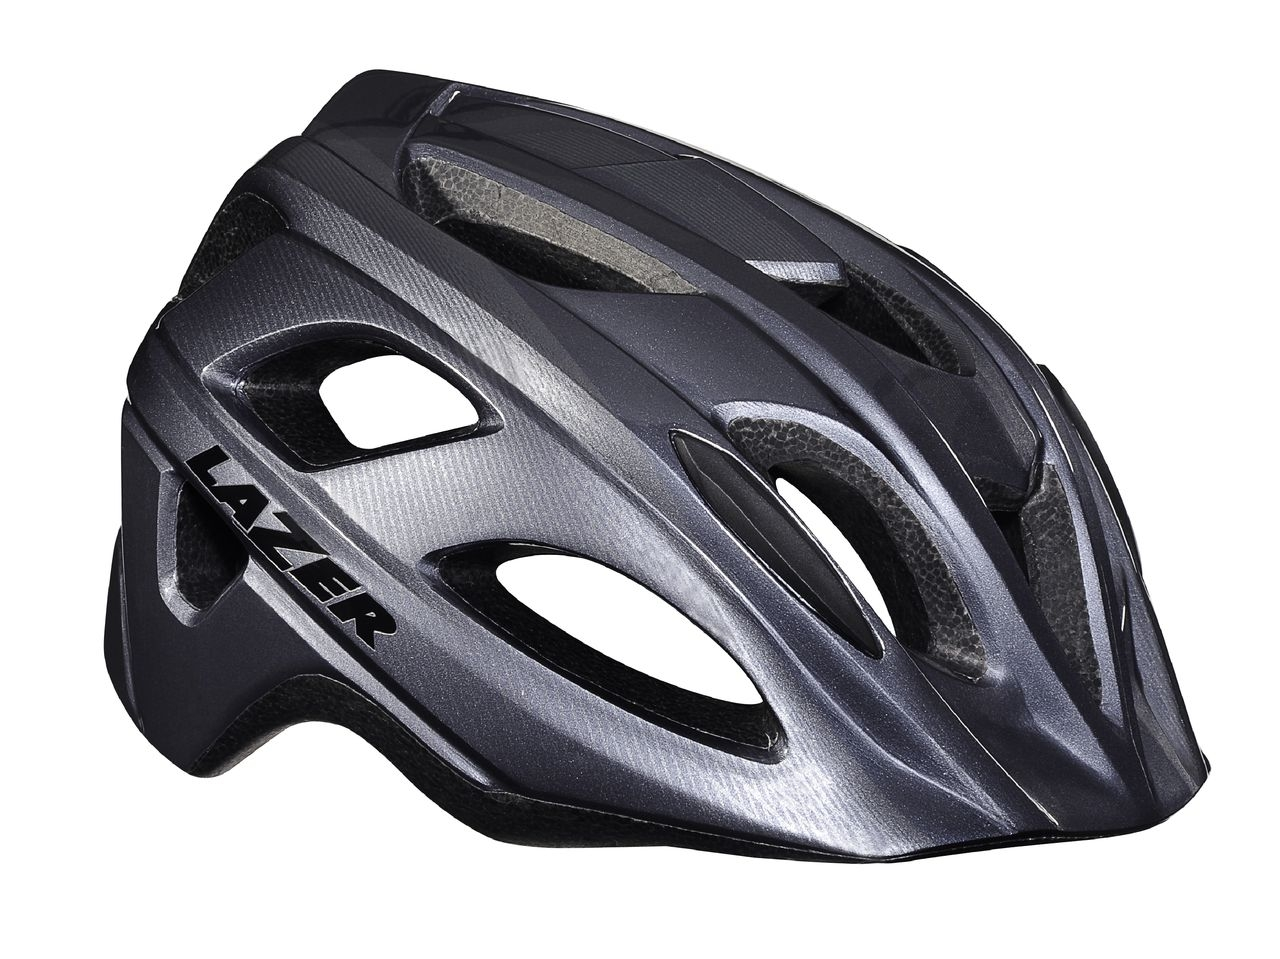 Casque Lazer BEAM Grey - M (55-59)